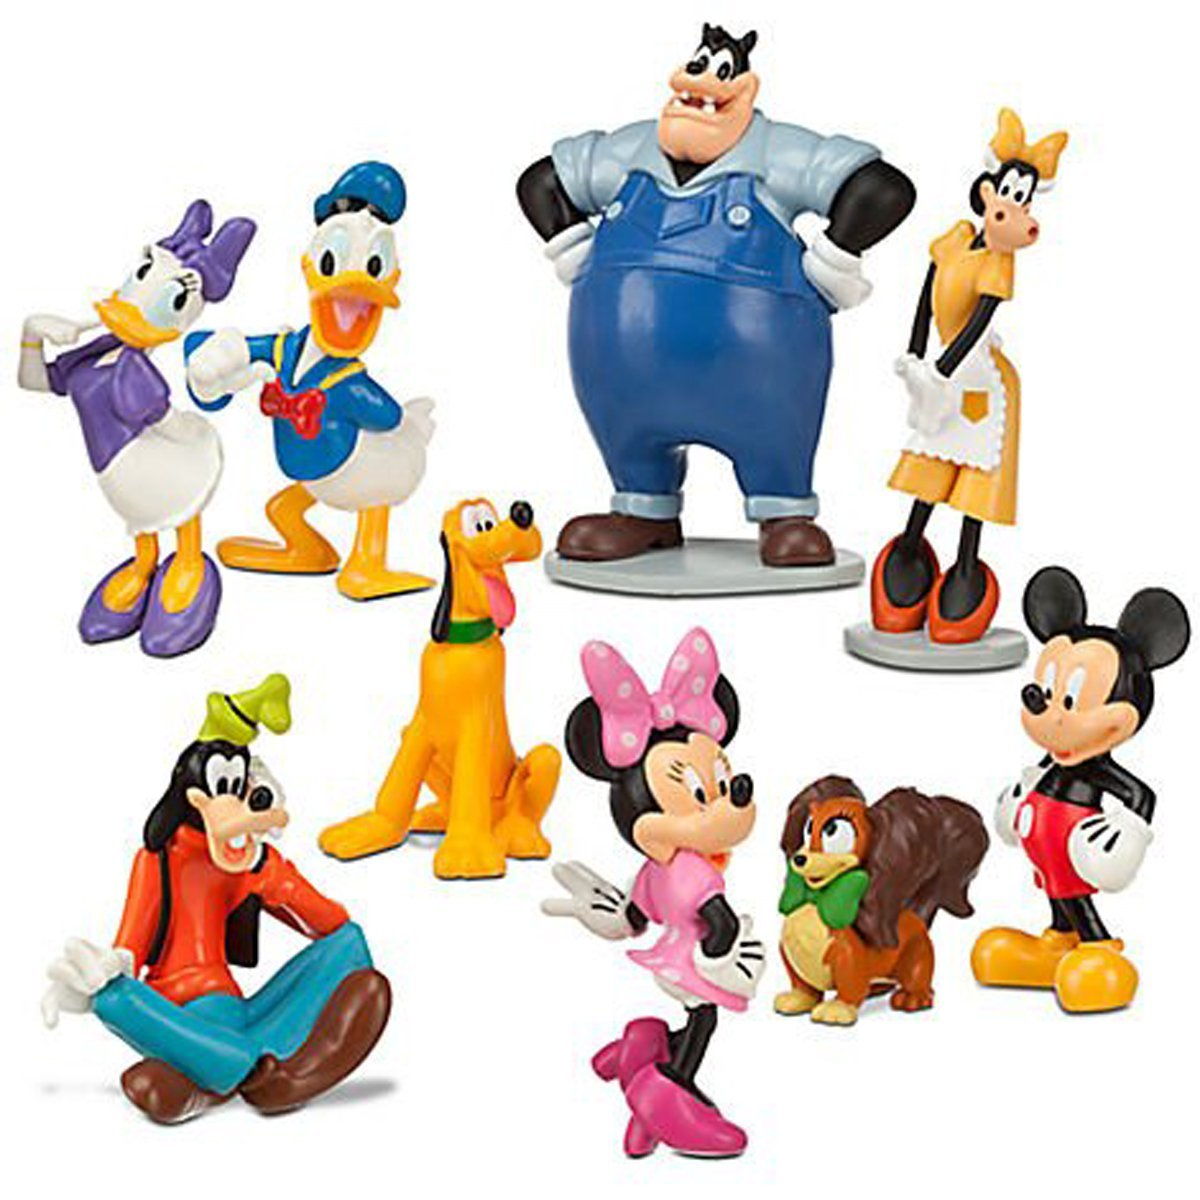 Mickey Mouse Clubhouse Characters Faces Mickey Mouse Clubhouse Toy